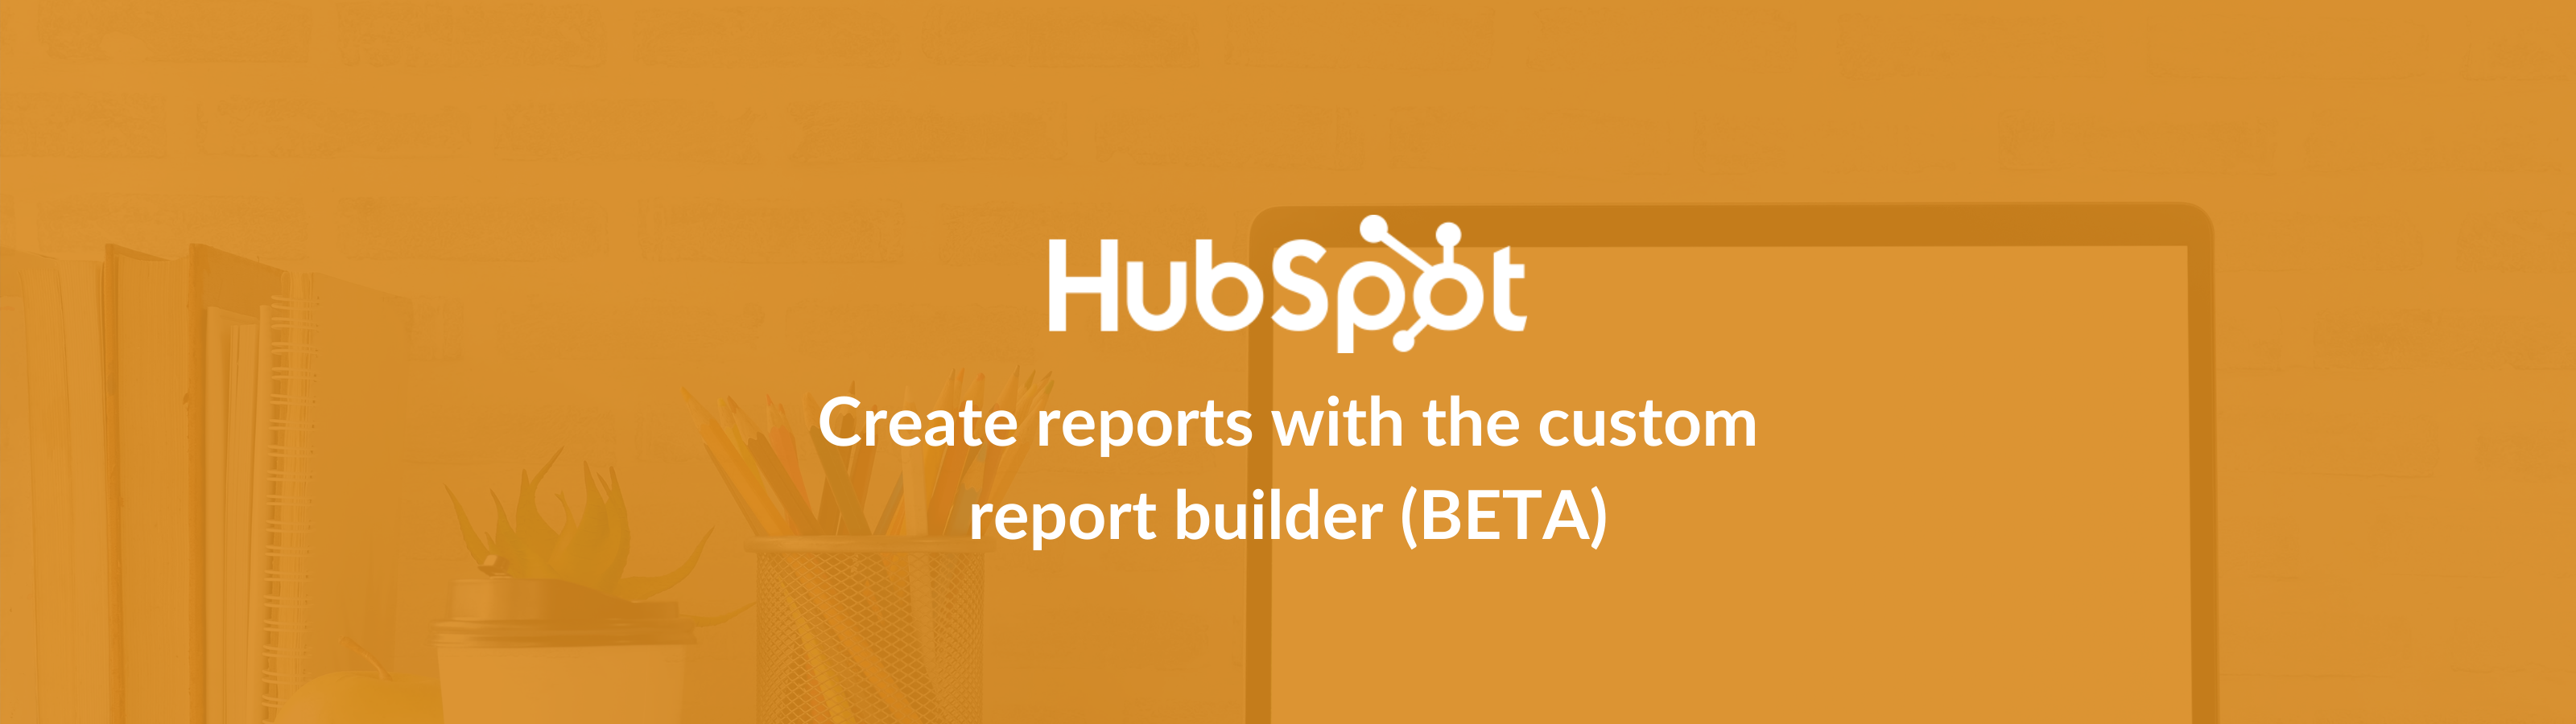 Create reports with the custom report builder (BETA)